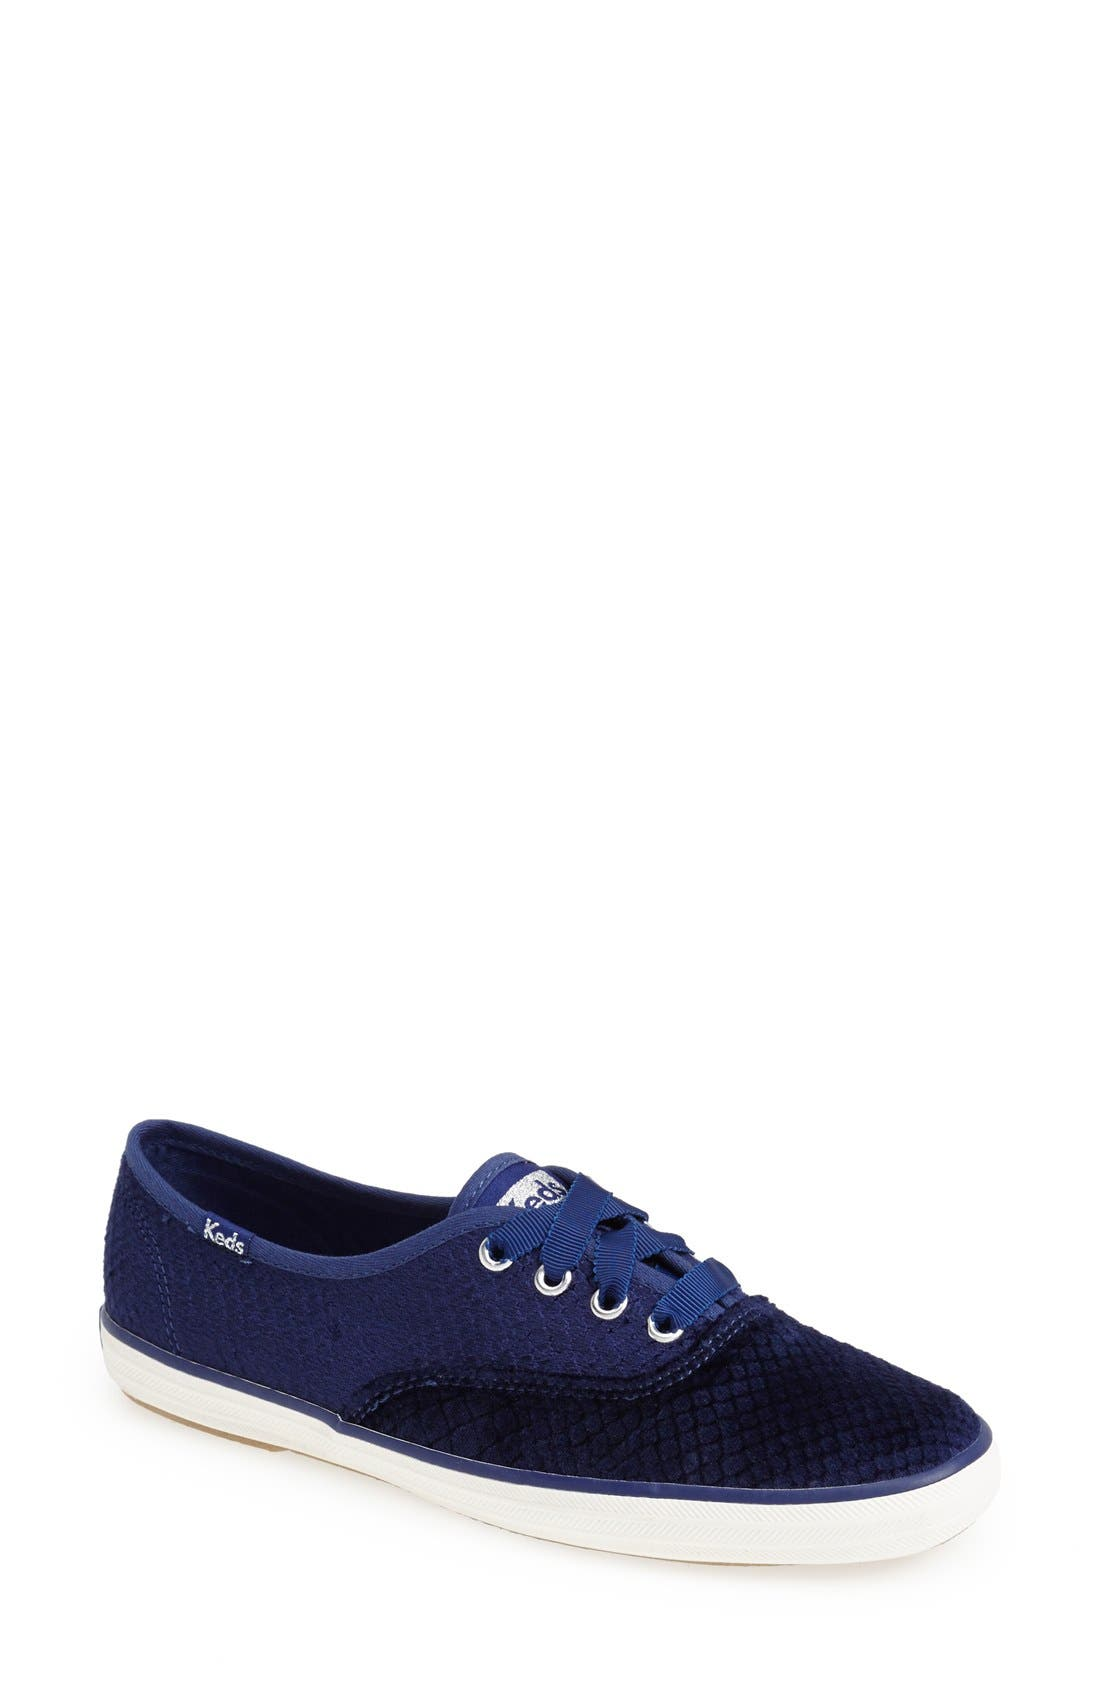 Alternate Image 1 Selected - Keds® 'Champion - Snake Embossed Velvet' Sneaker (Women)